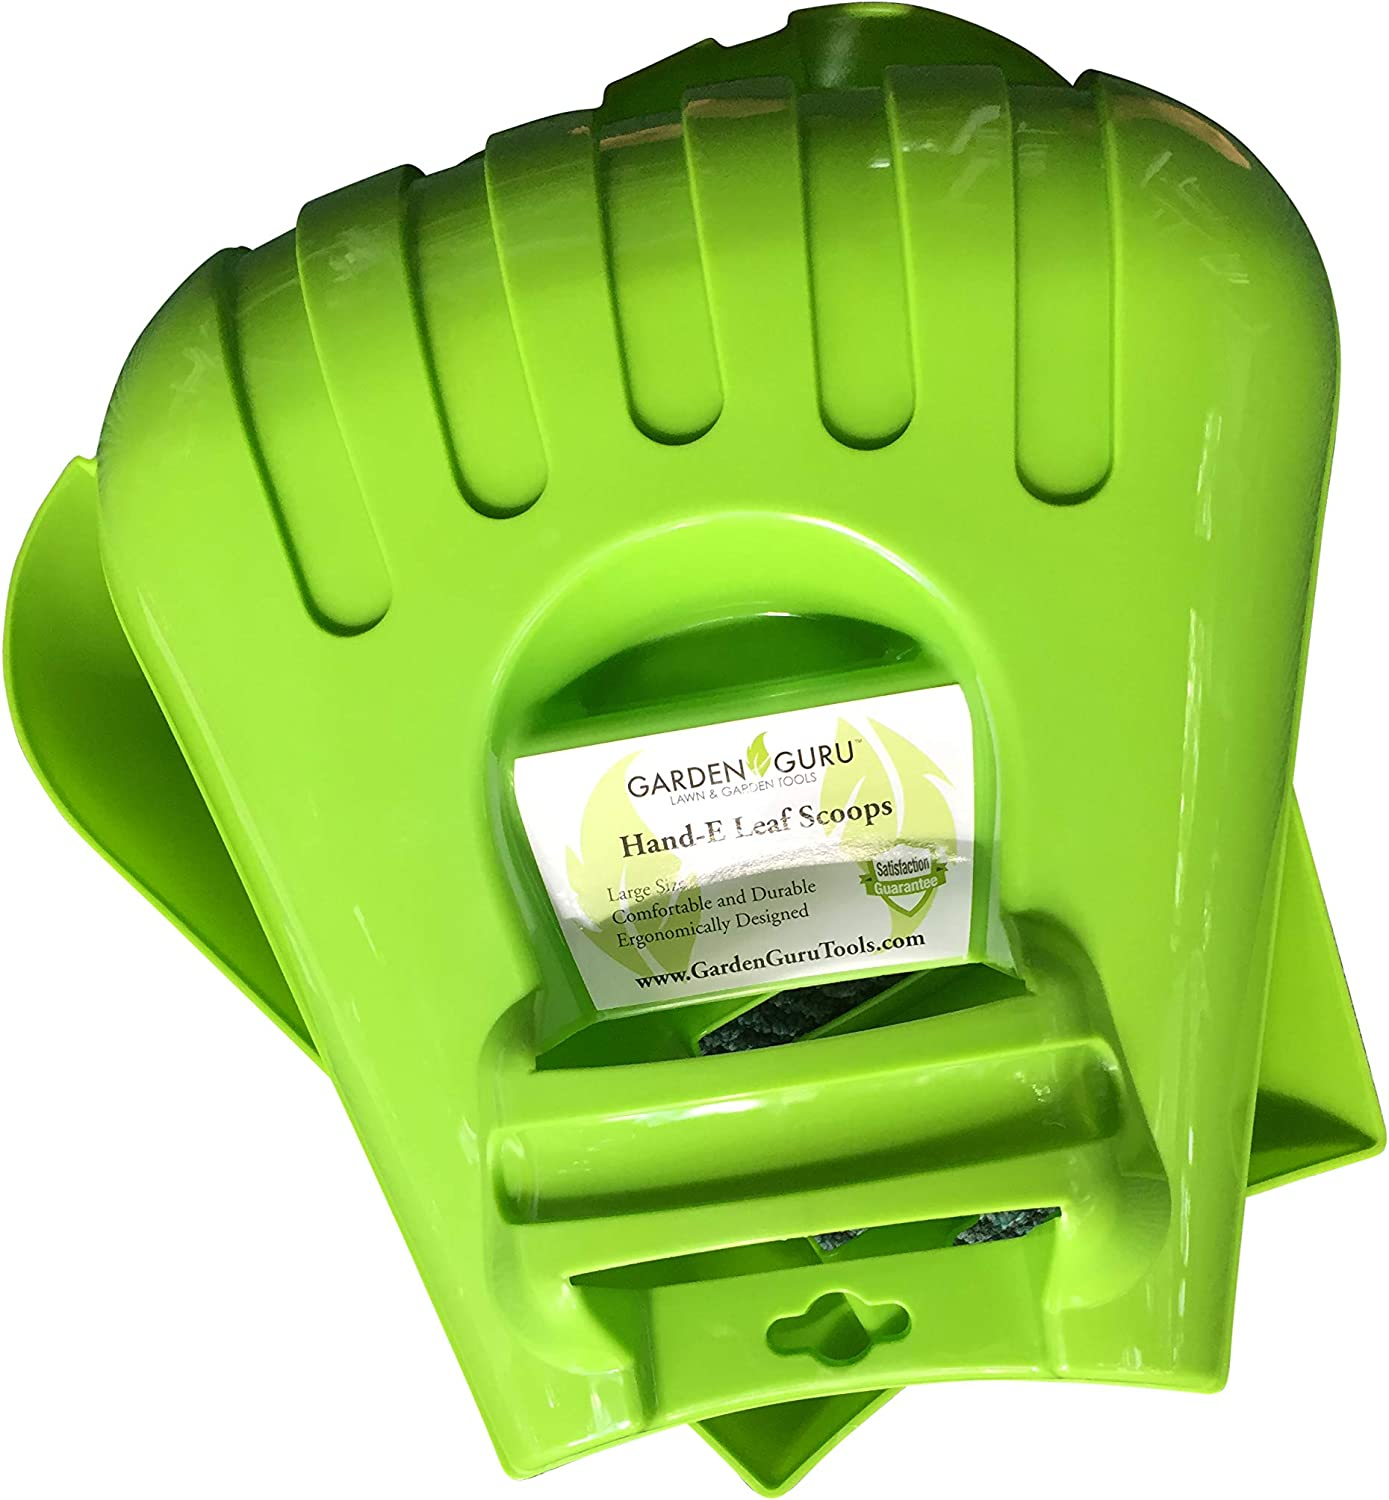 Garden Guru Leaf Scoops Claws - Ergonomic, Large Hand Held Garden Rakes for Fast & Easy Leaf and Lawn Grass Removal